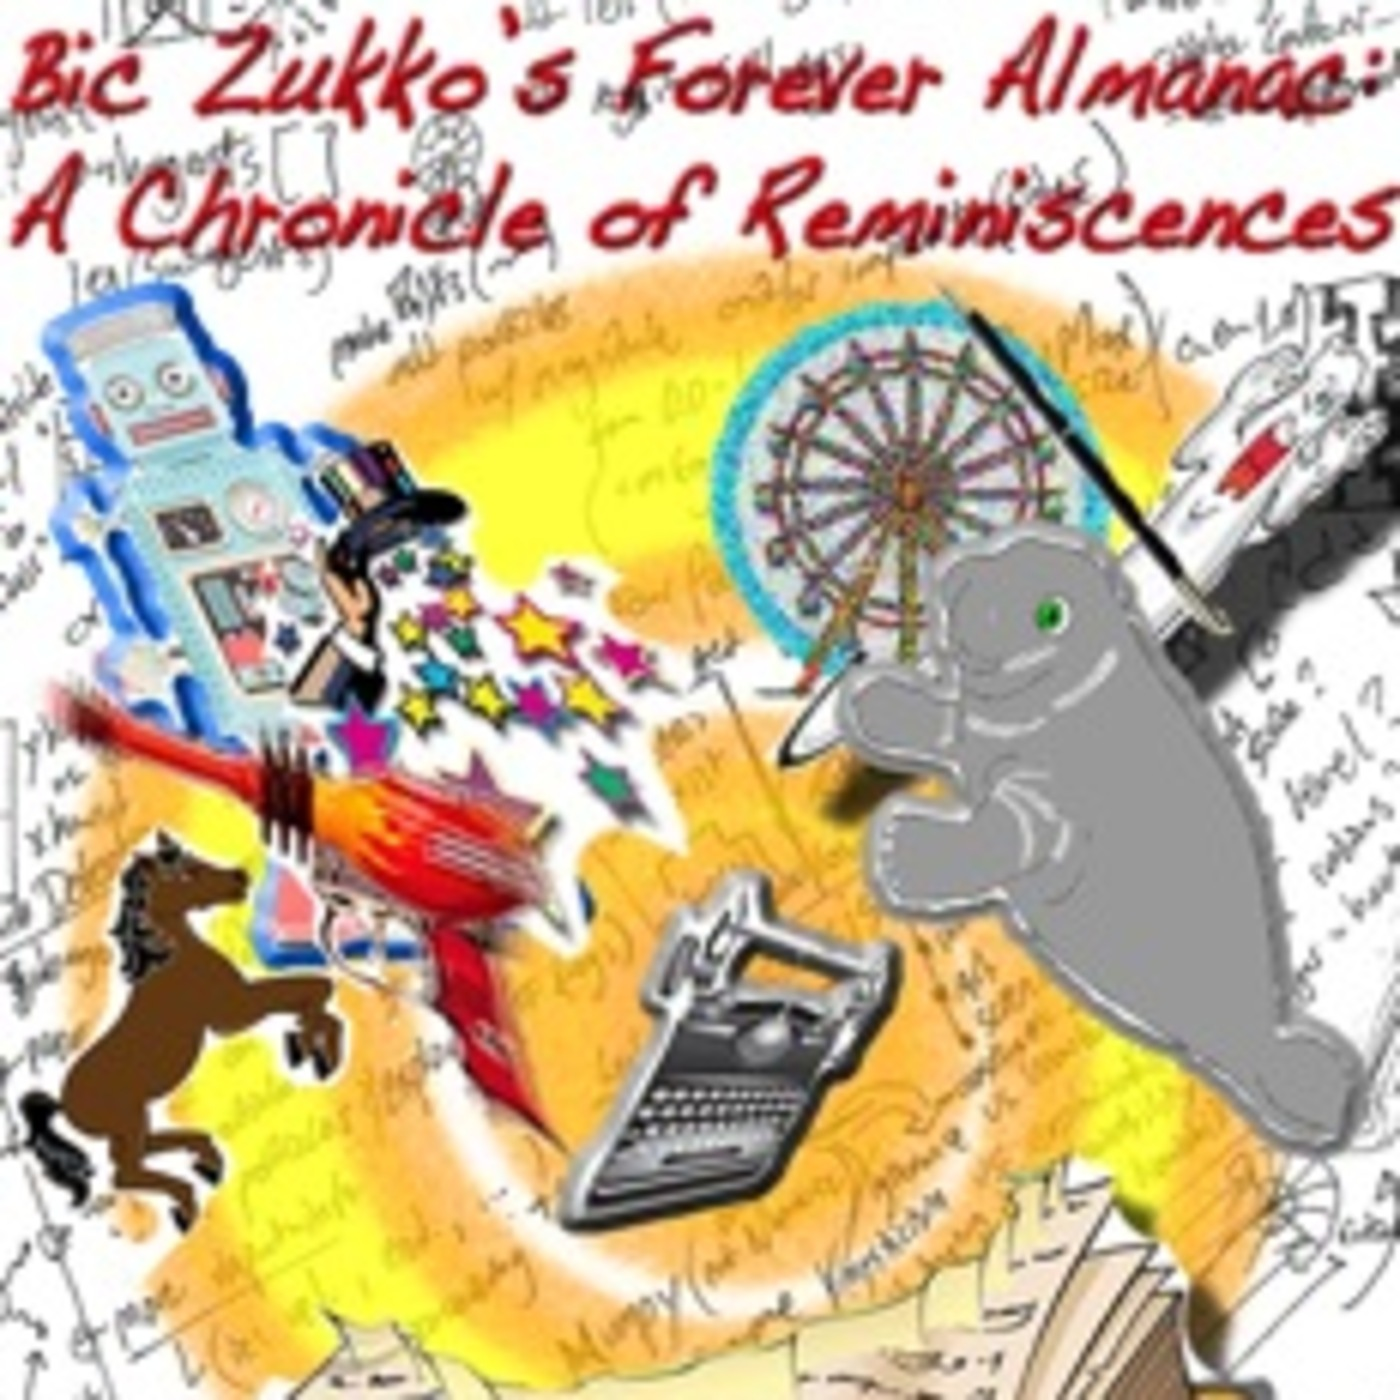 Bic Zukko's Forever Almanac: A Chronicle of Reminiscences